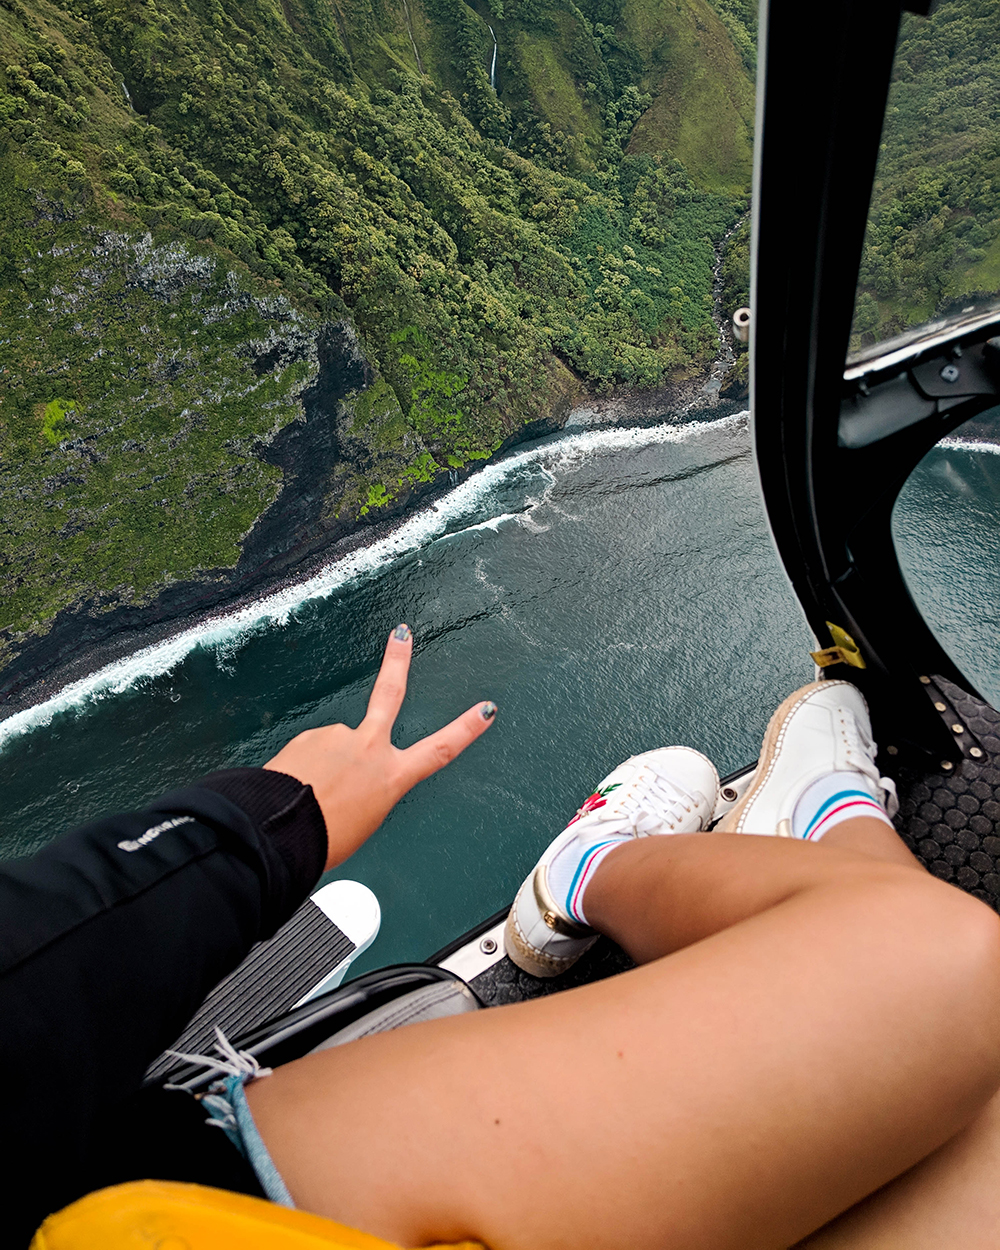 Open door helicopter Maui Hawaii to do